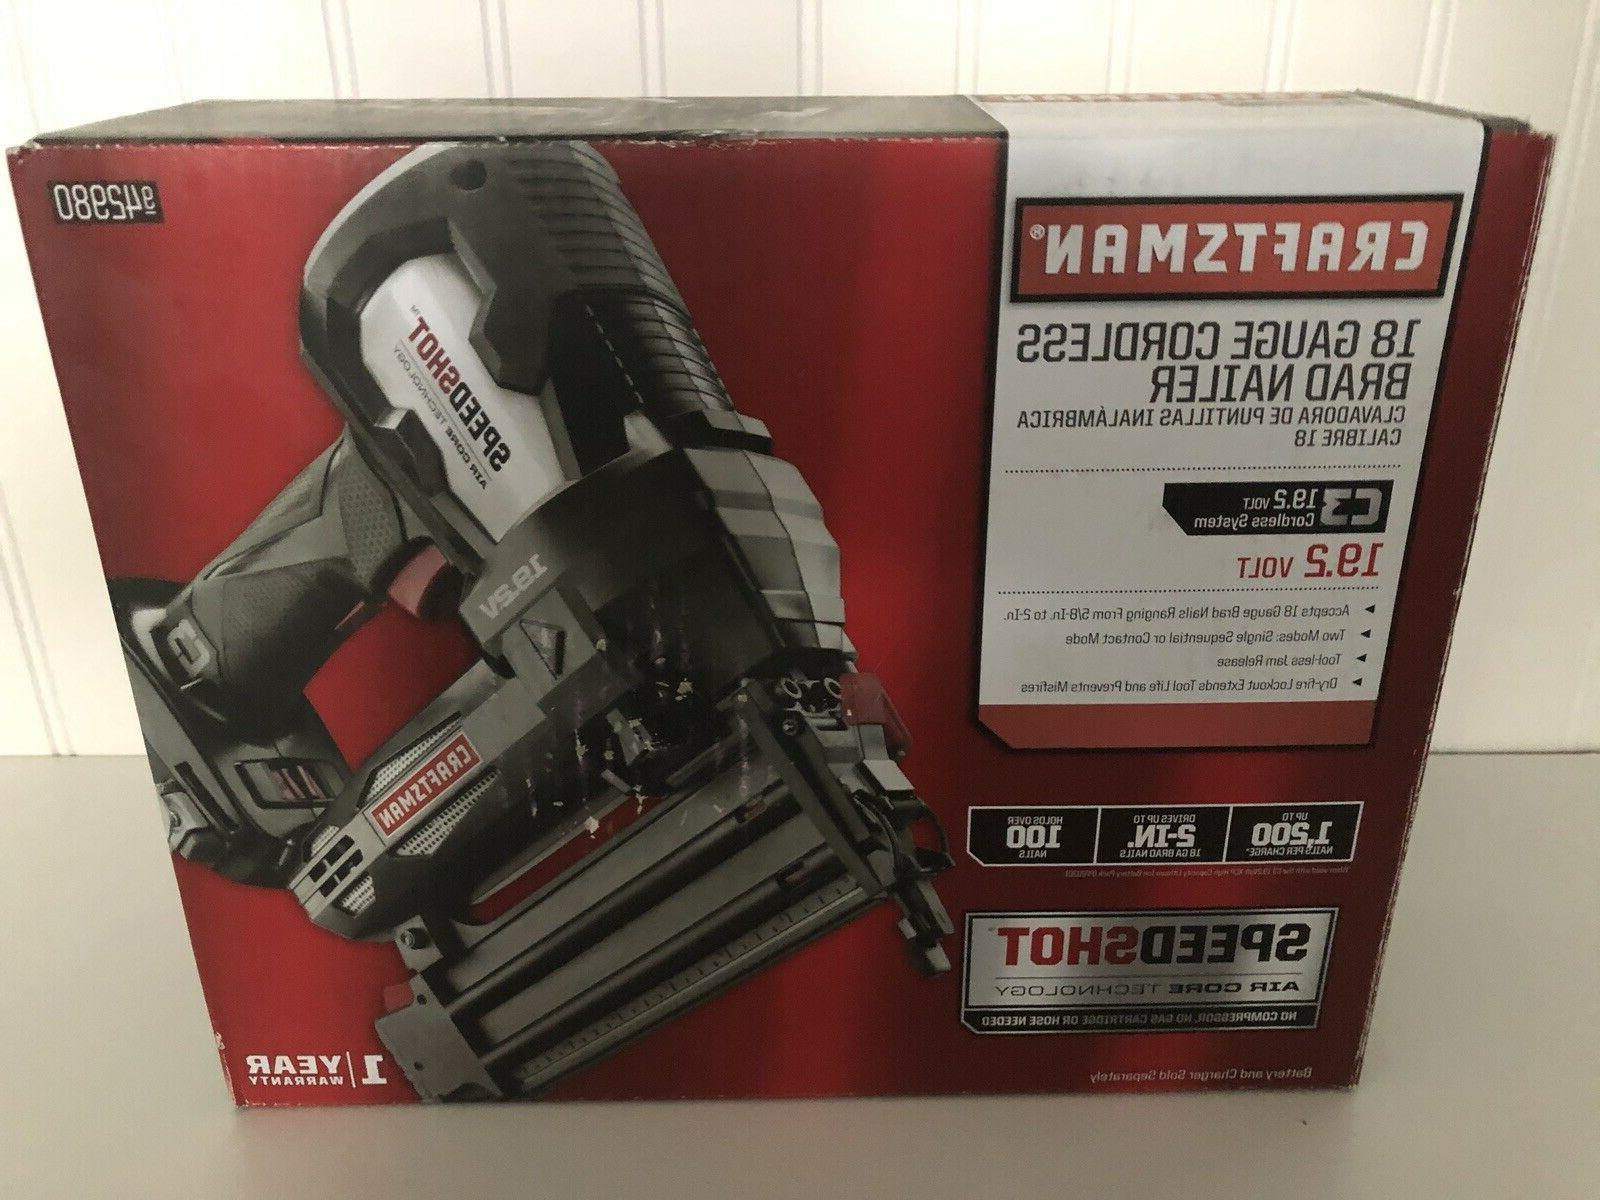 Craftsman C3 Nailer # 942980 ~ NEW